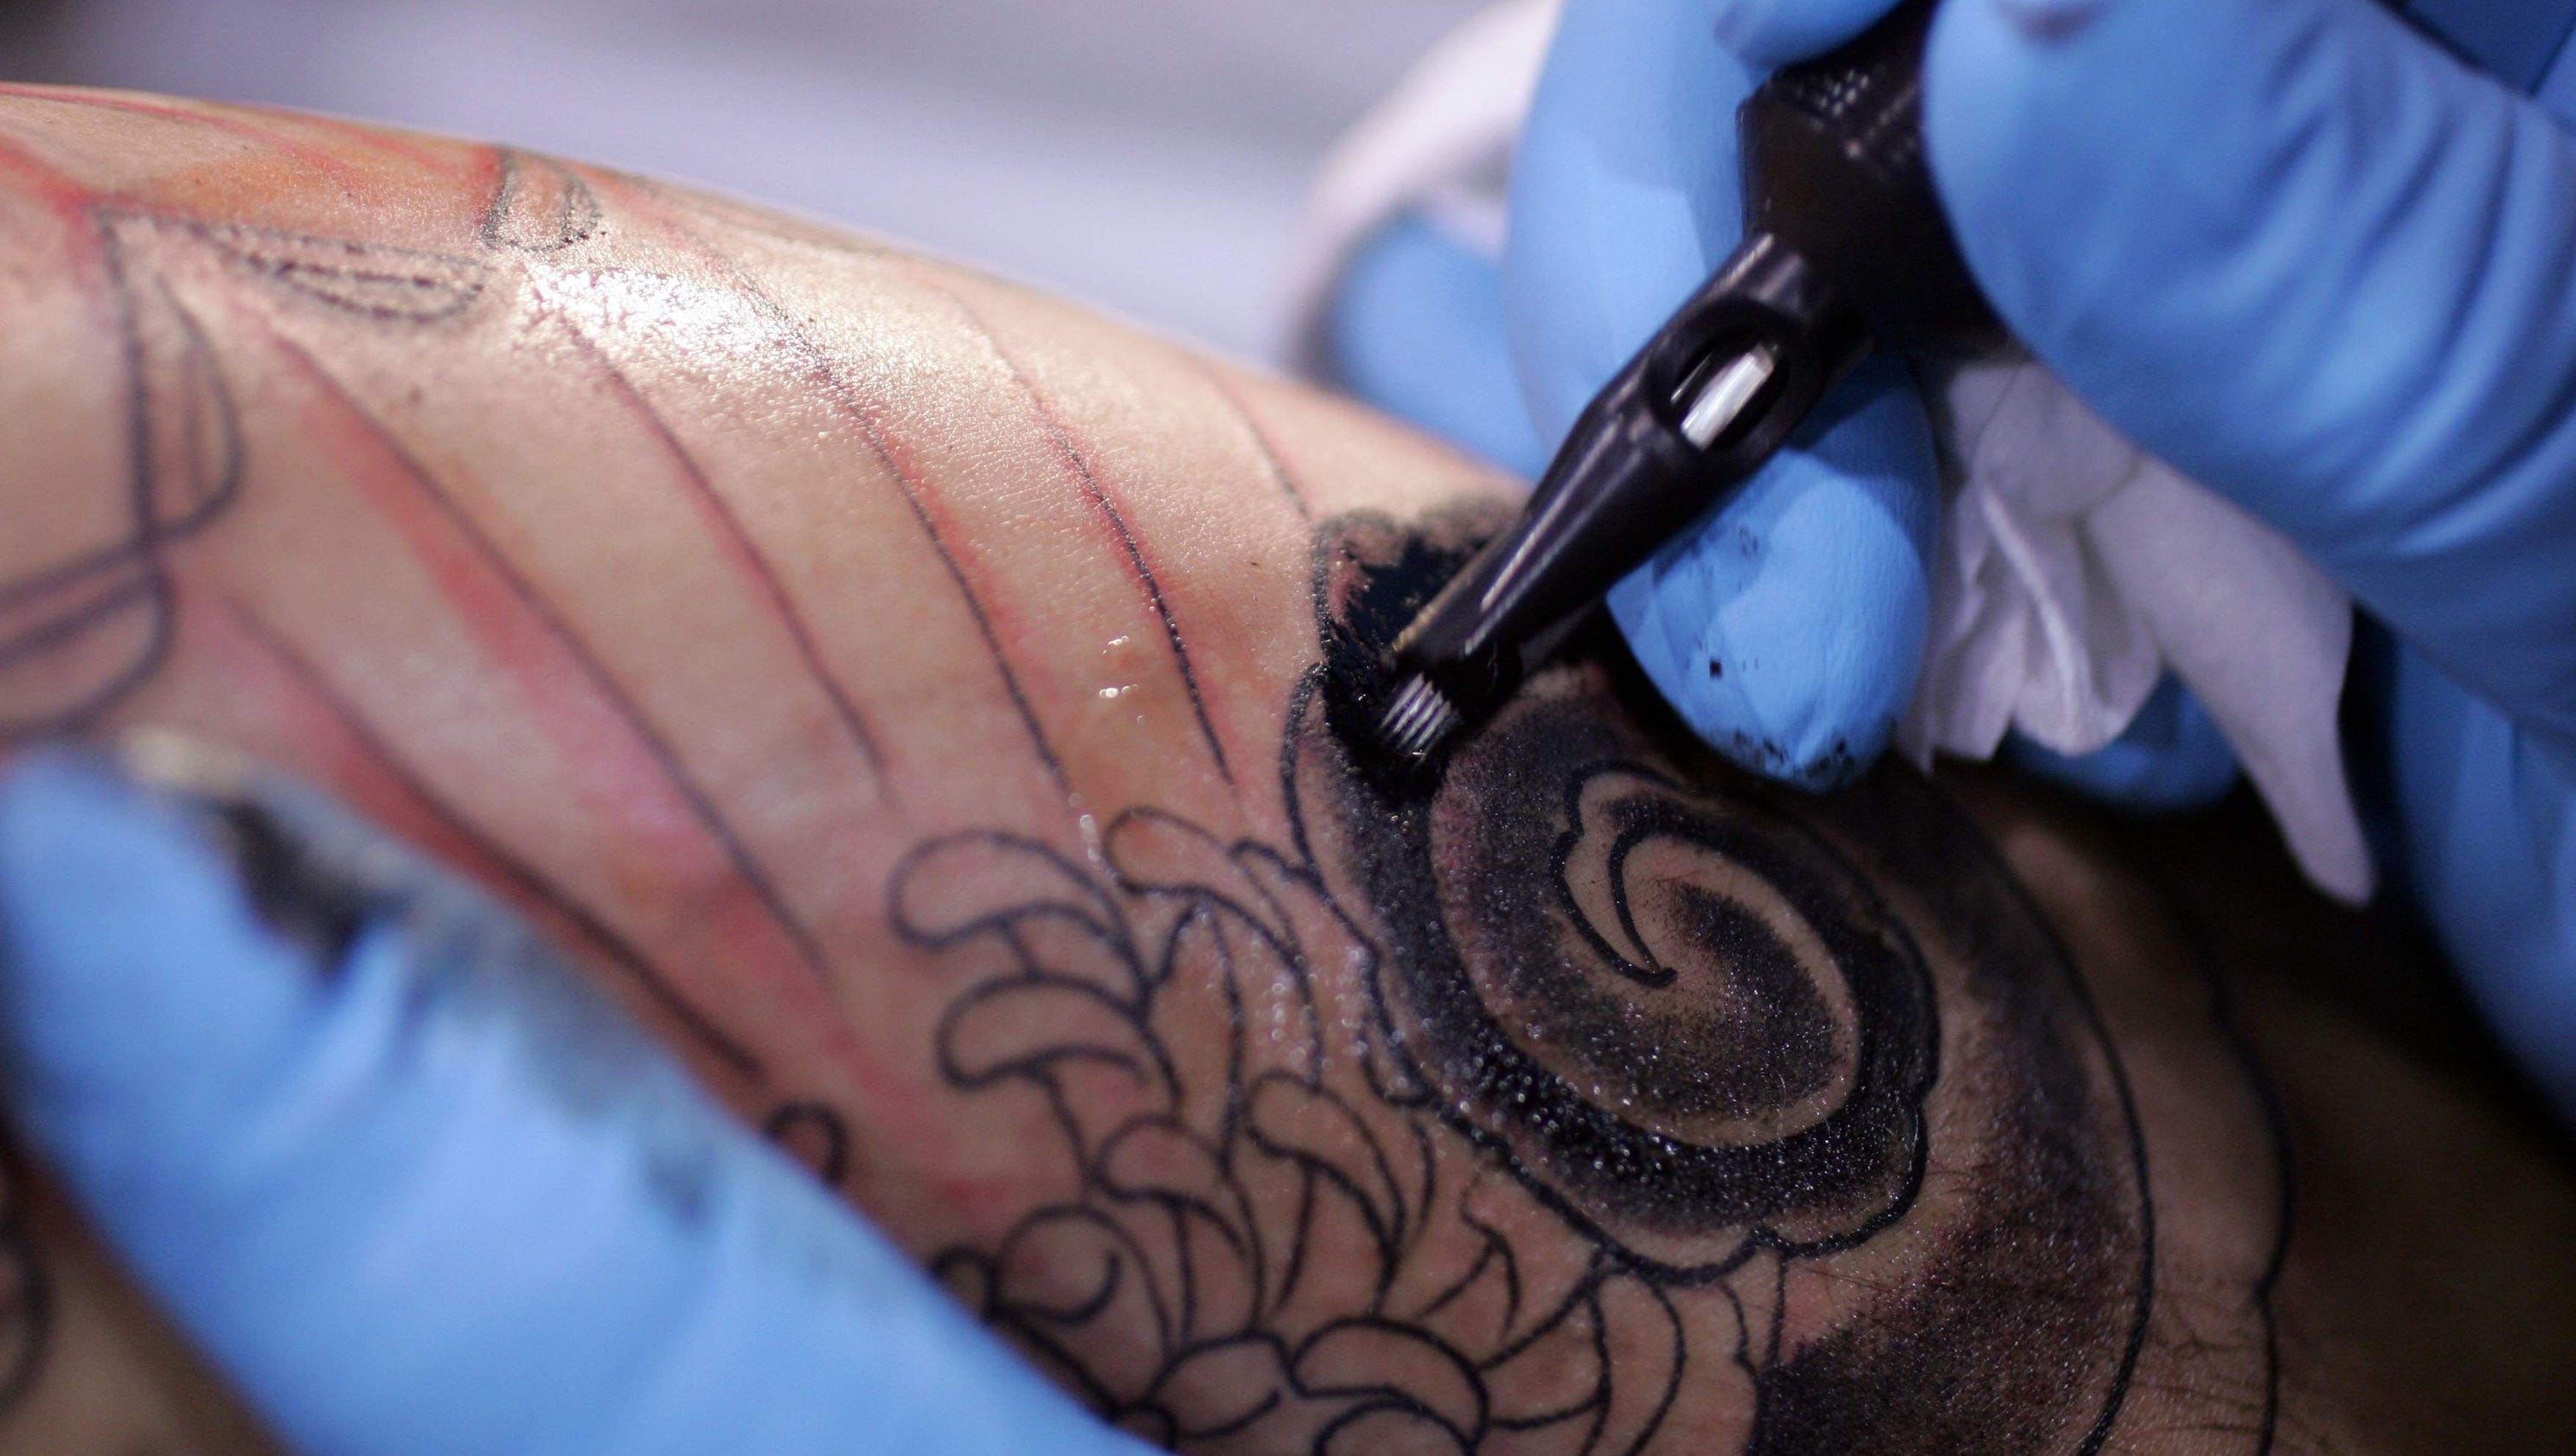 Tattoo debate rages on for pennsylvania commissions for Tattoos in reading pa